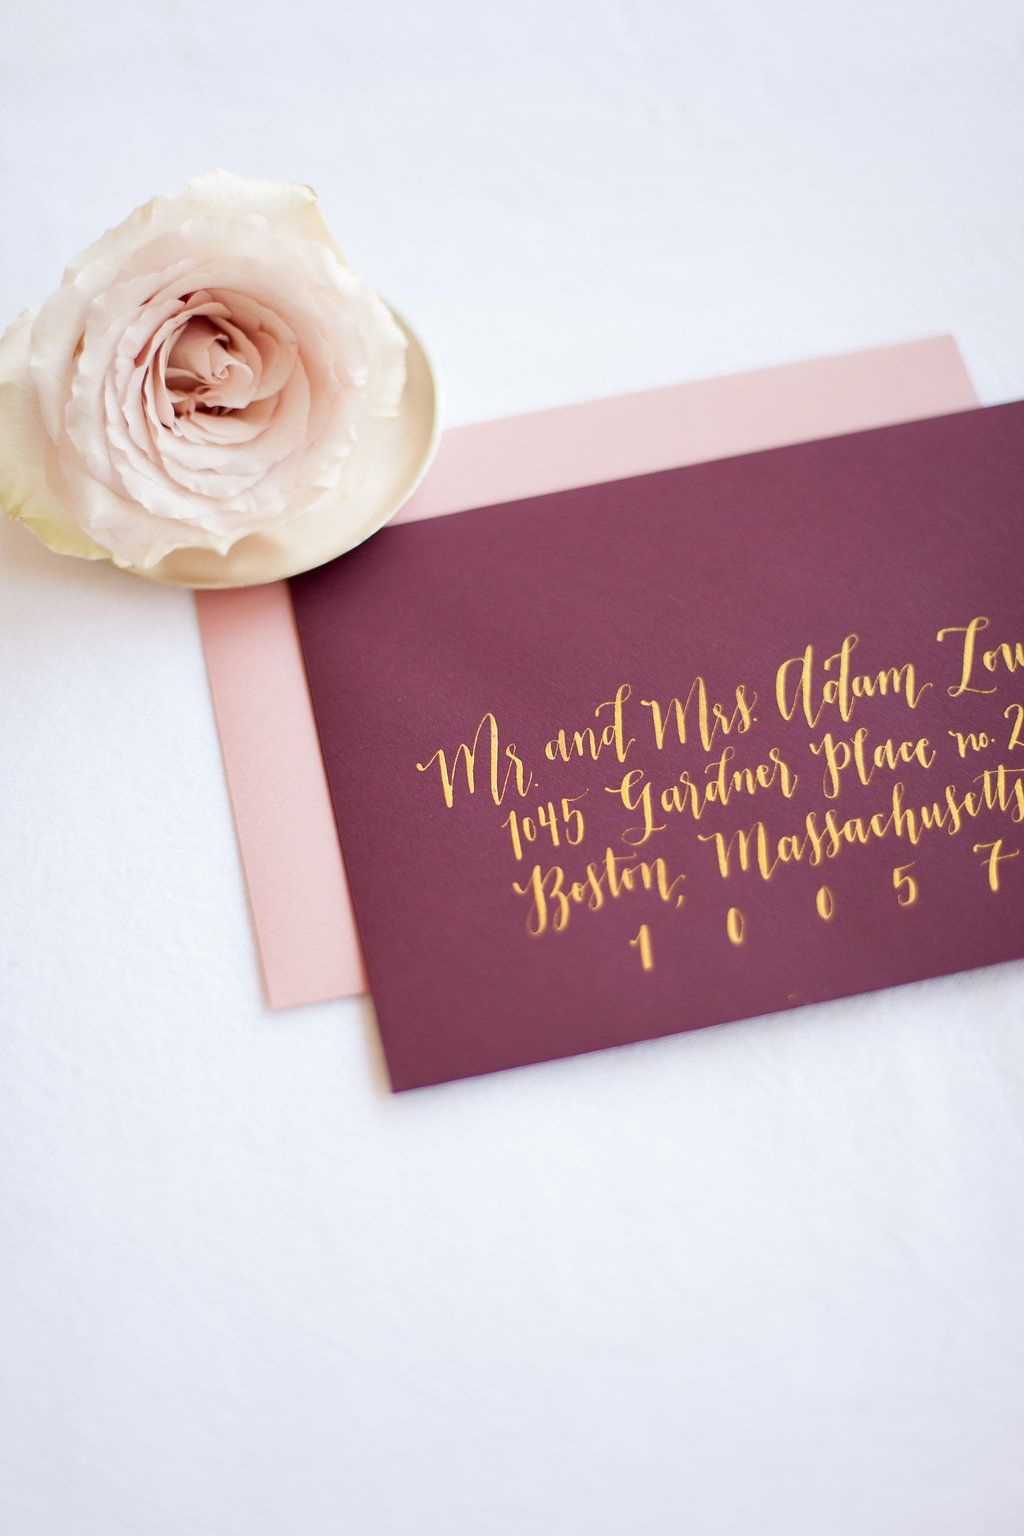 invitation letter for us vissample wedding%0A Gold Finetec calligraphy on marsala envelope by Prairie Letter Shop  Visit  www prairielettershop